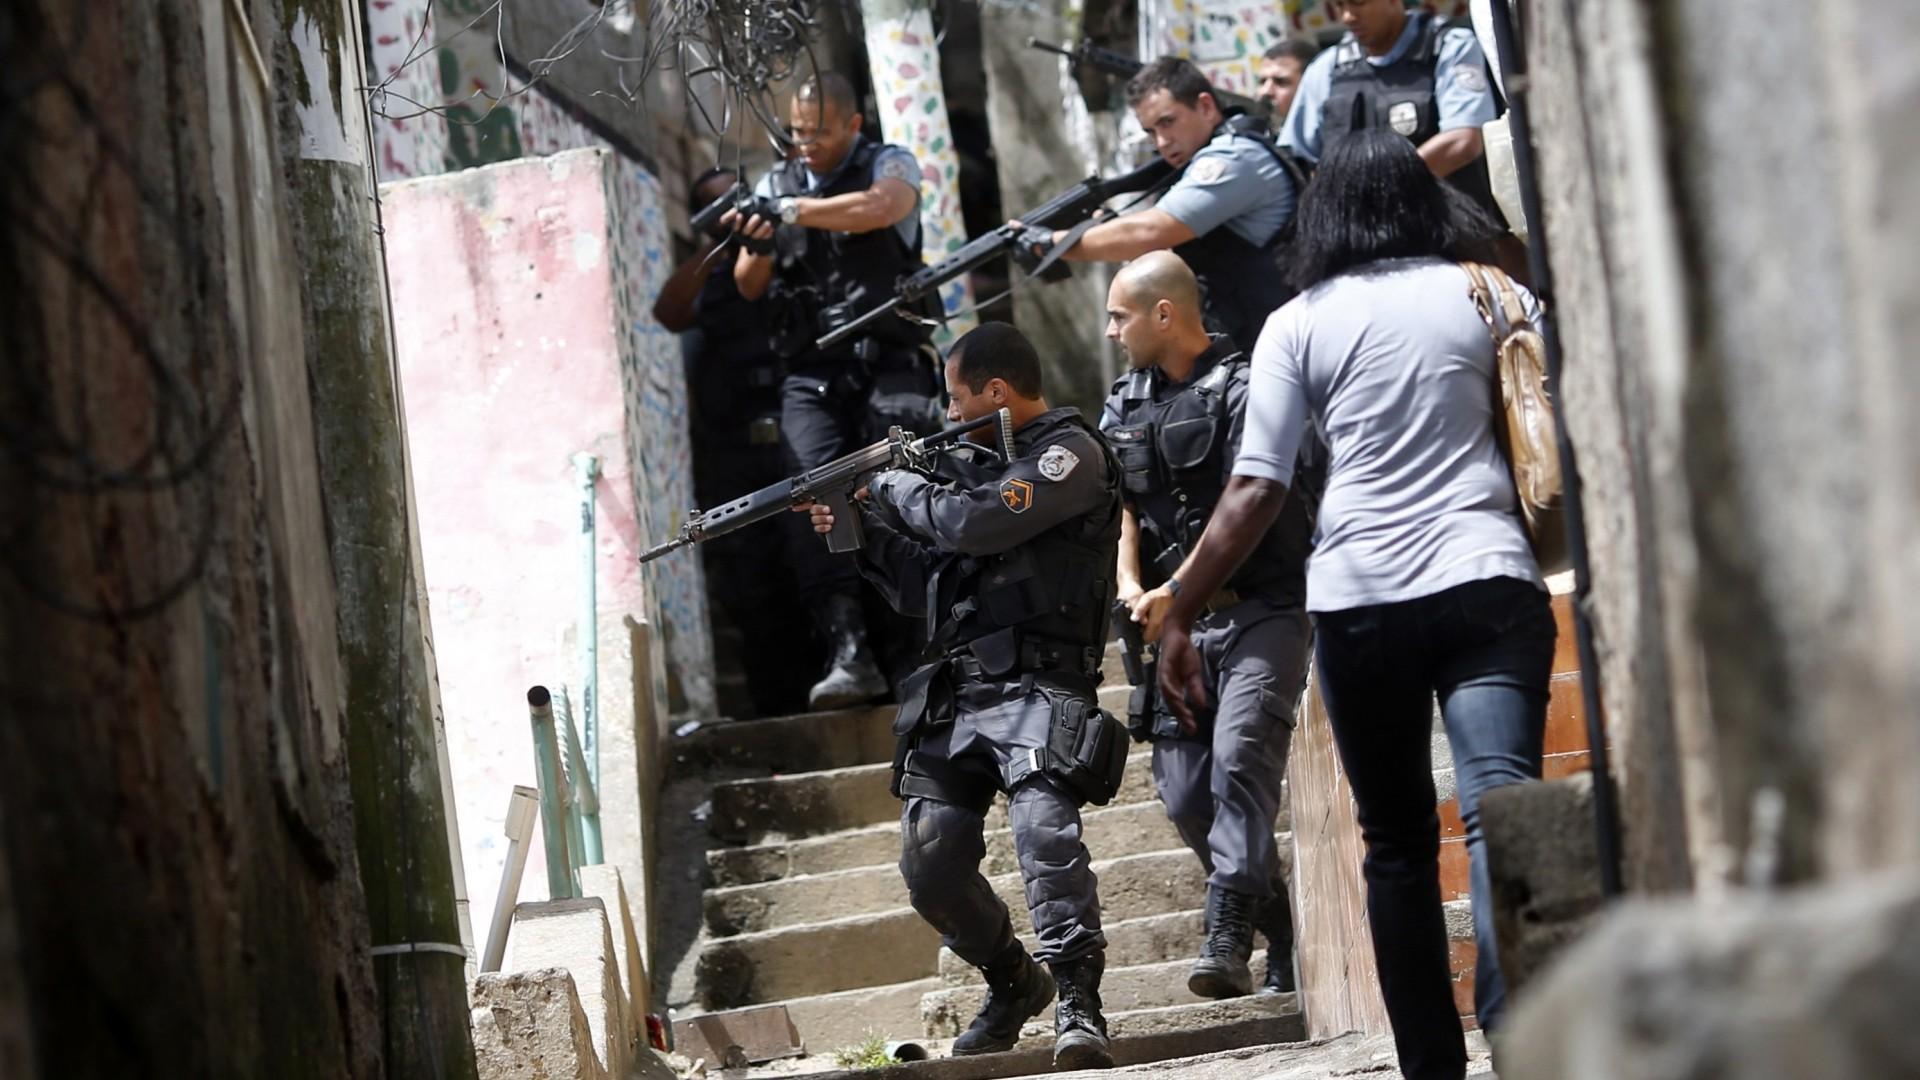 favela crime youth To combat favela crime, the authorities established a special military police pacifying unit the locals are now held hostage by the continuing war between gangsters and government forces, with bullets flying through family homes and children frequently caught in the crossfire.